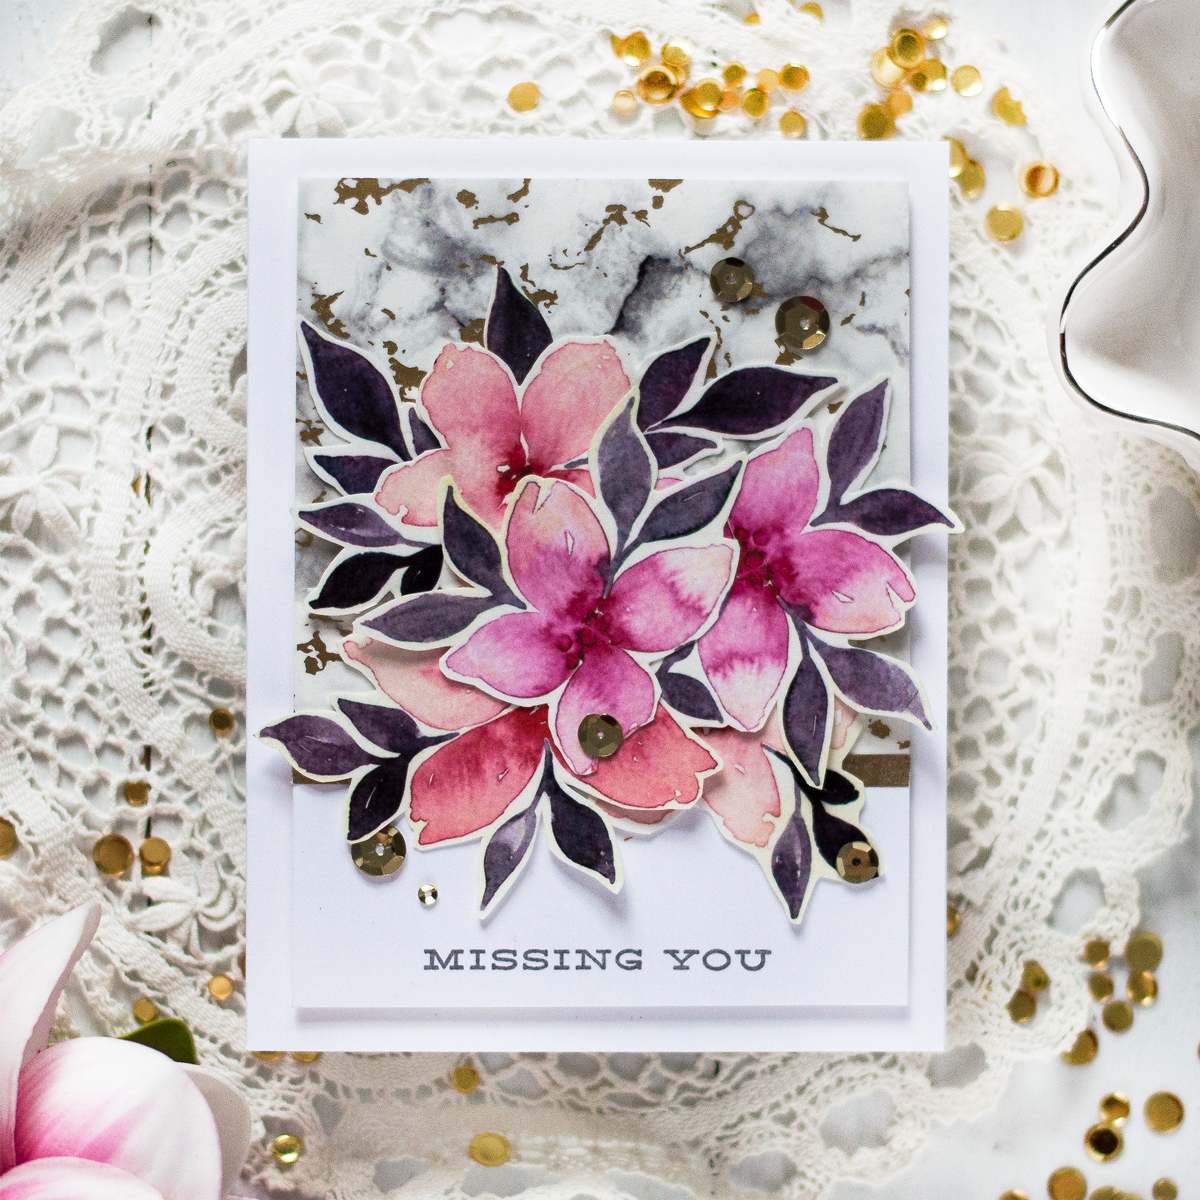 Easy Floral Foiled Marble Card. Card by Svitlana Shayevich